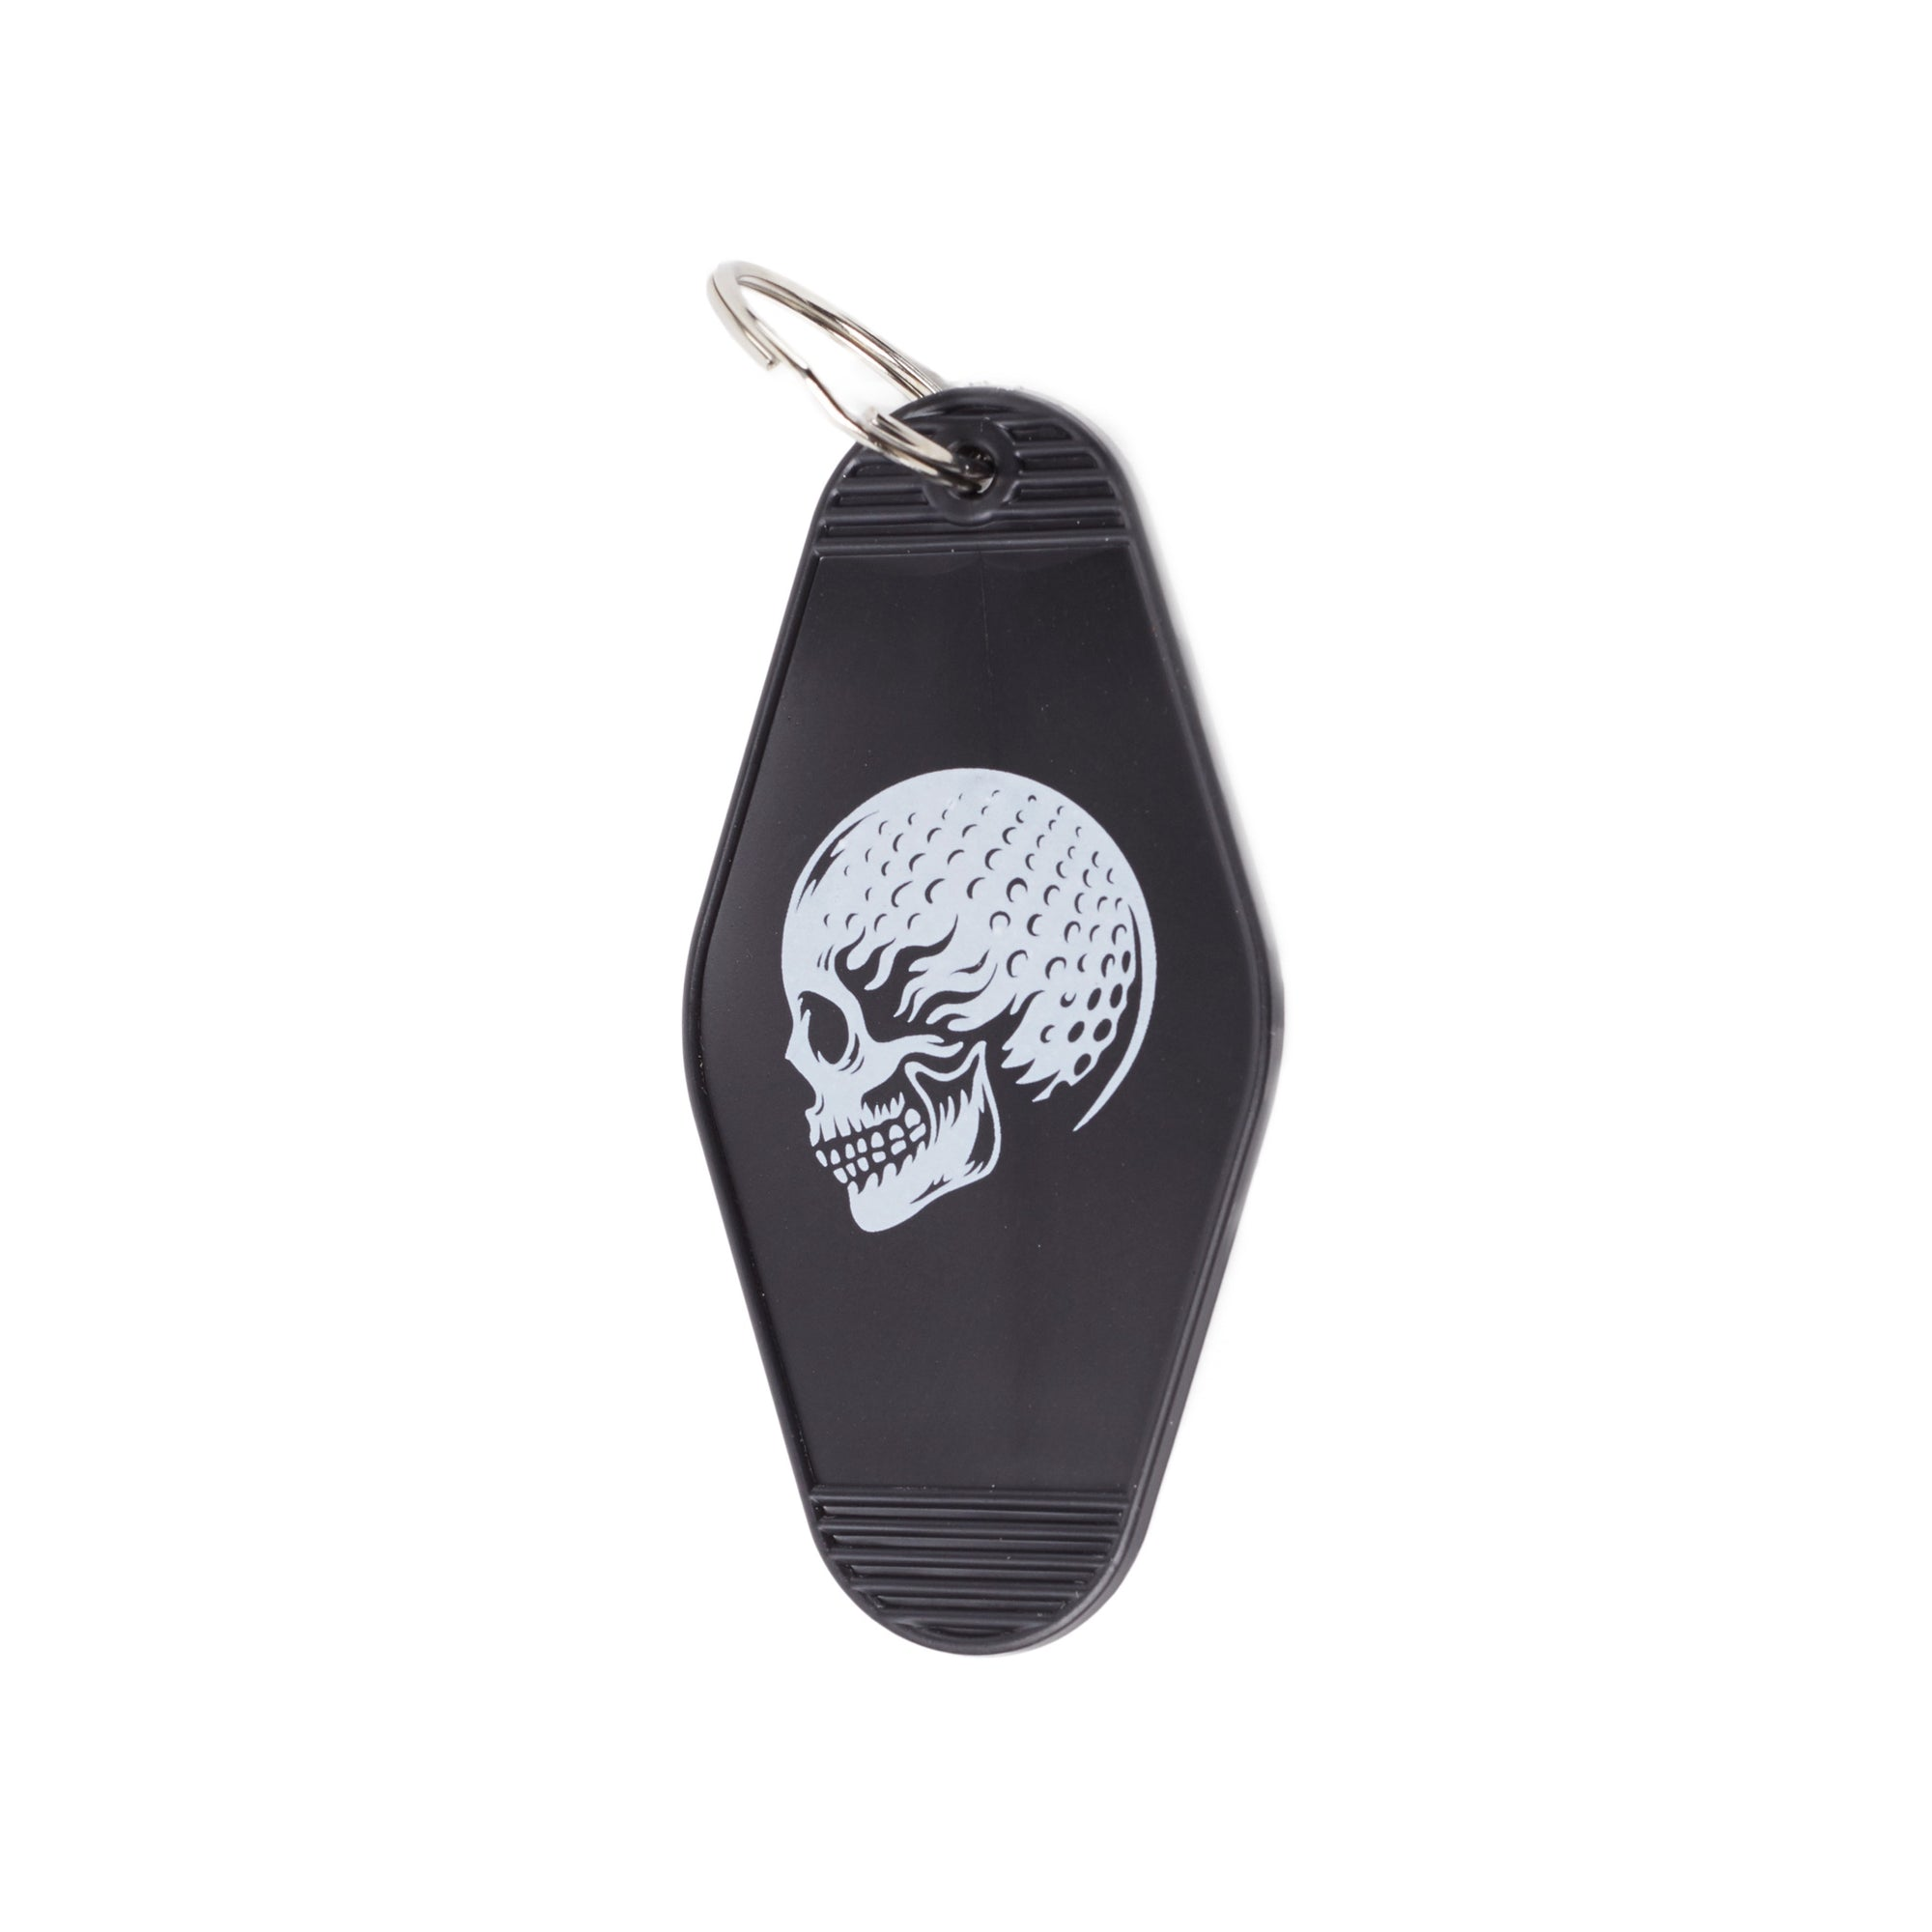 skulled-birds-of-condor-black-golf-key-ring-keyring